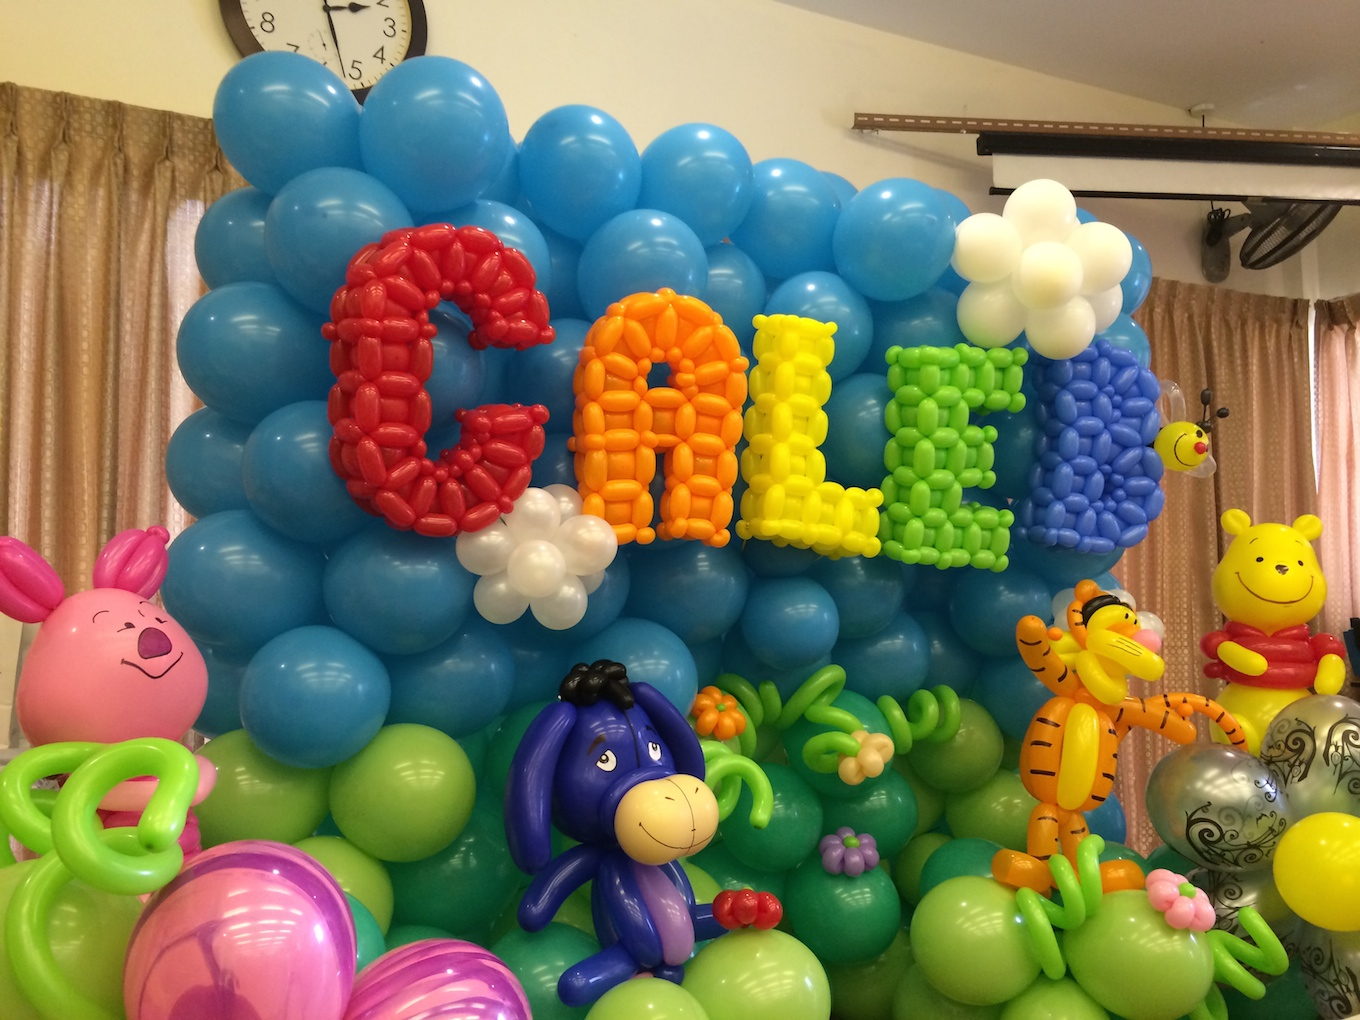 Cartoon Balloon Decorations For Birthday Party That Balloons